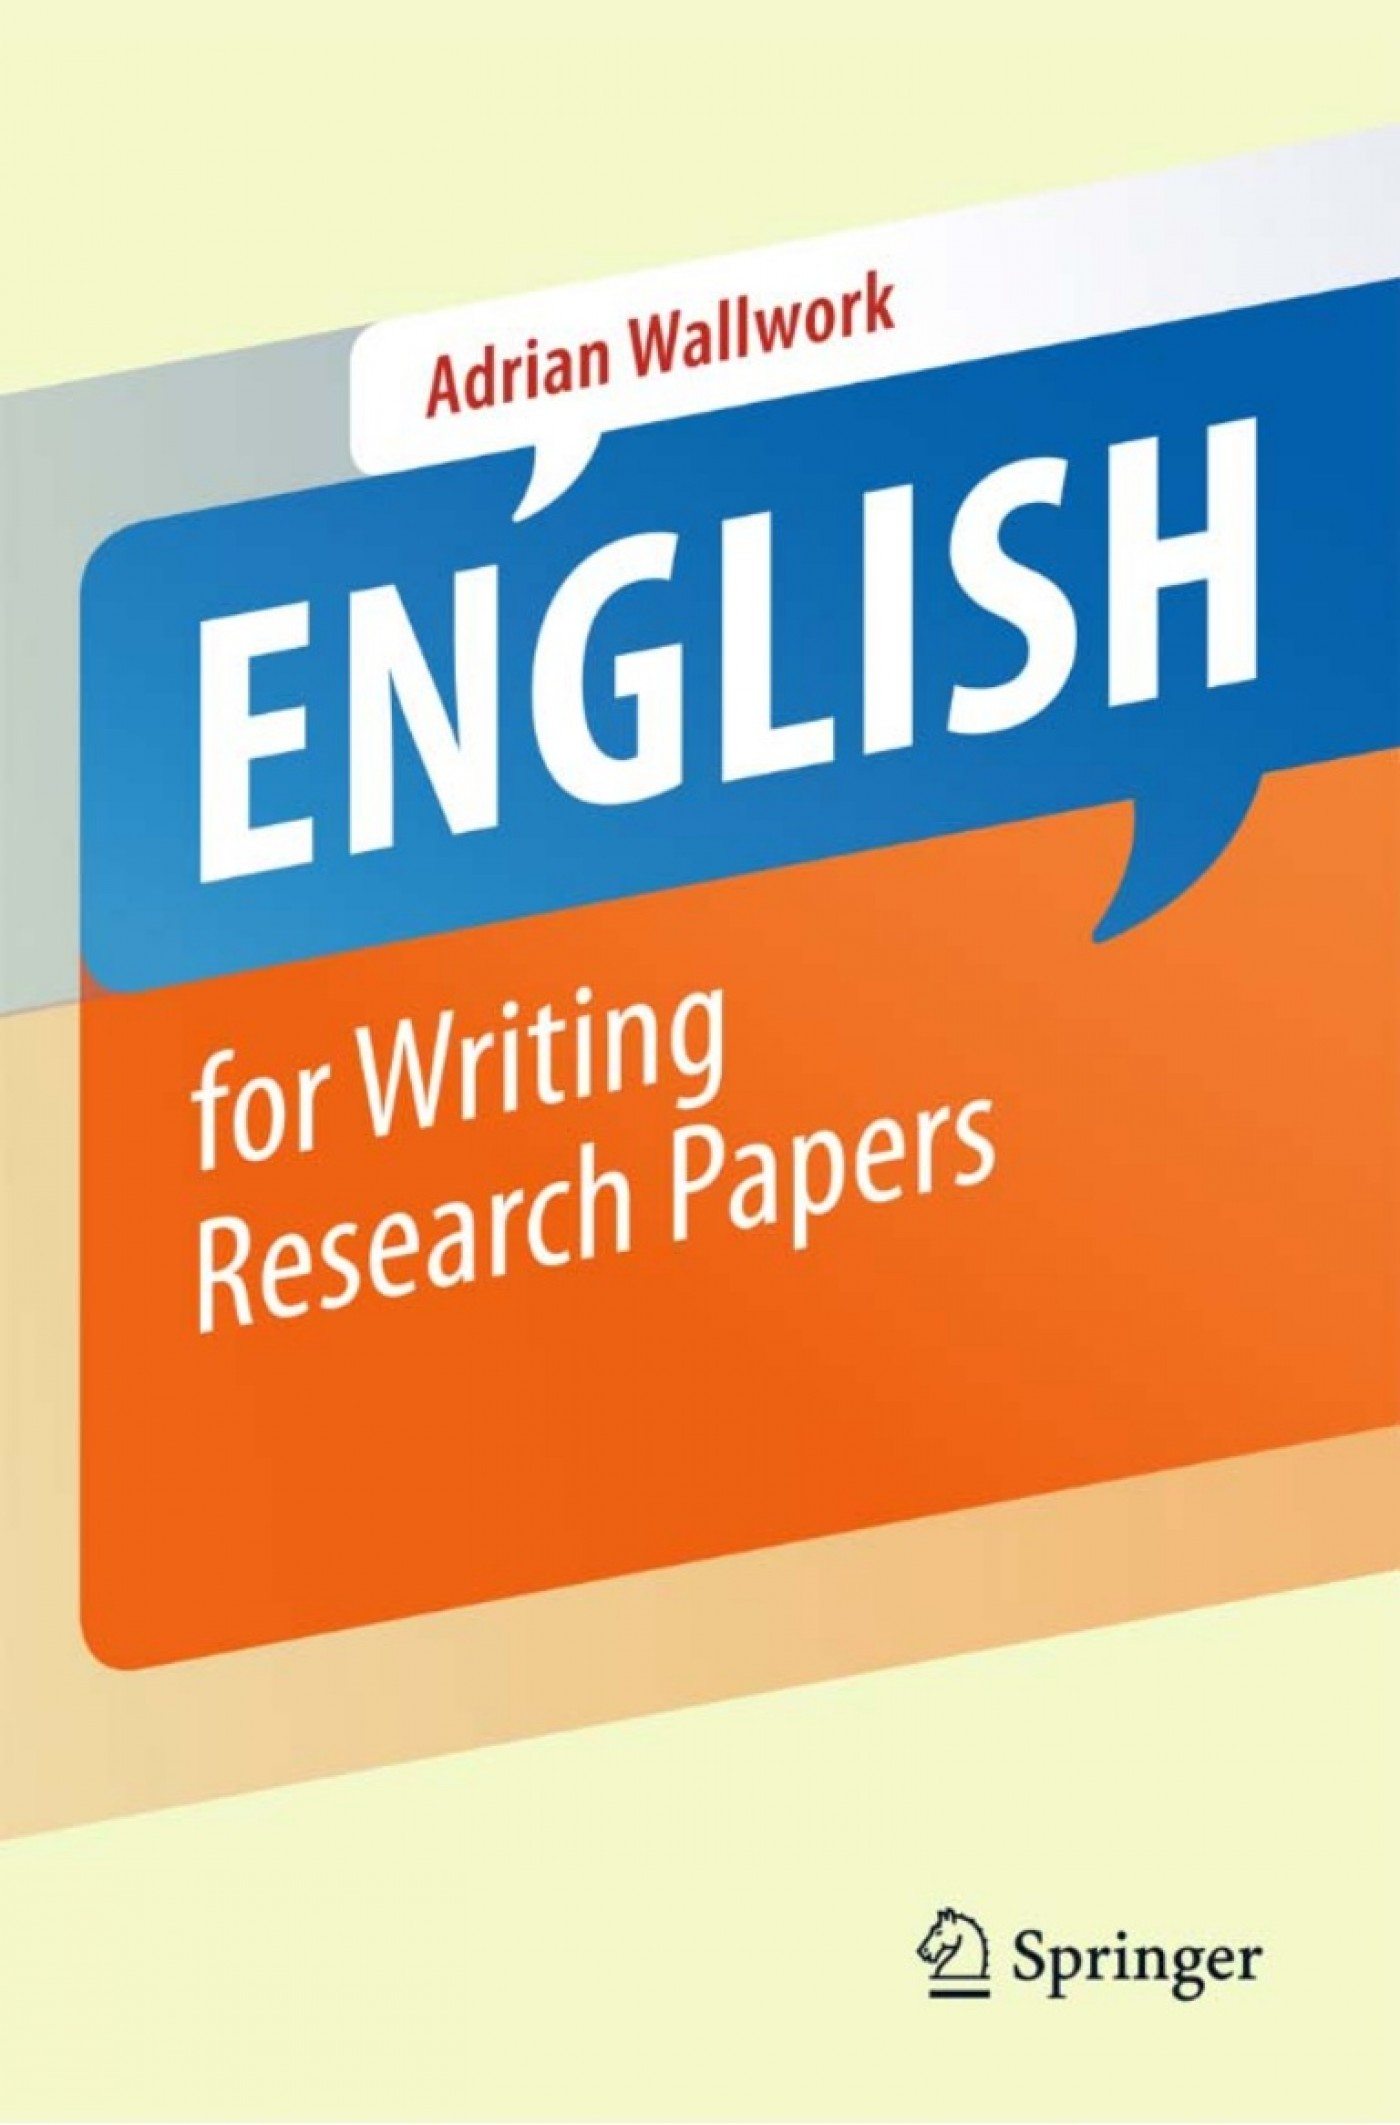 019 Englishforwritingresearchpapers Conversion Gate01 Thumbnail Writing Research Striking Paper Meme Papers A Complete Guide 15th Edition Pdf Free 16th 1400